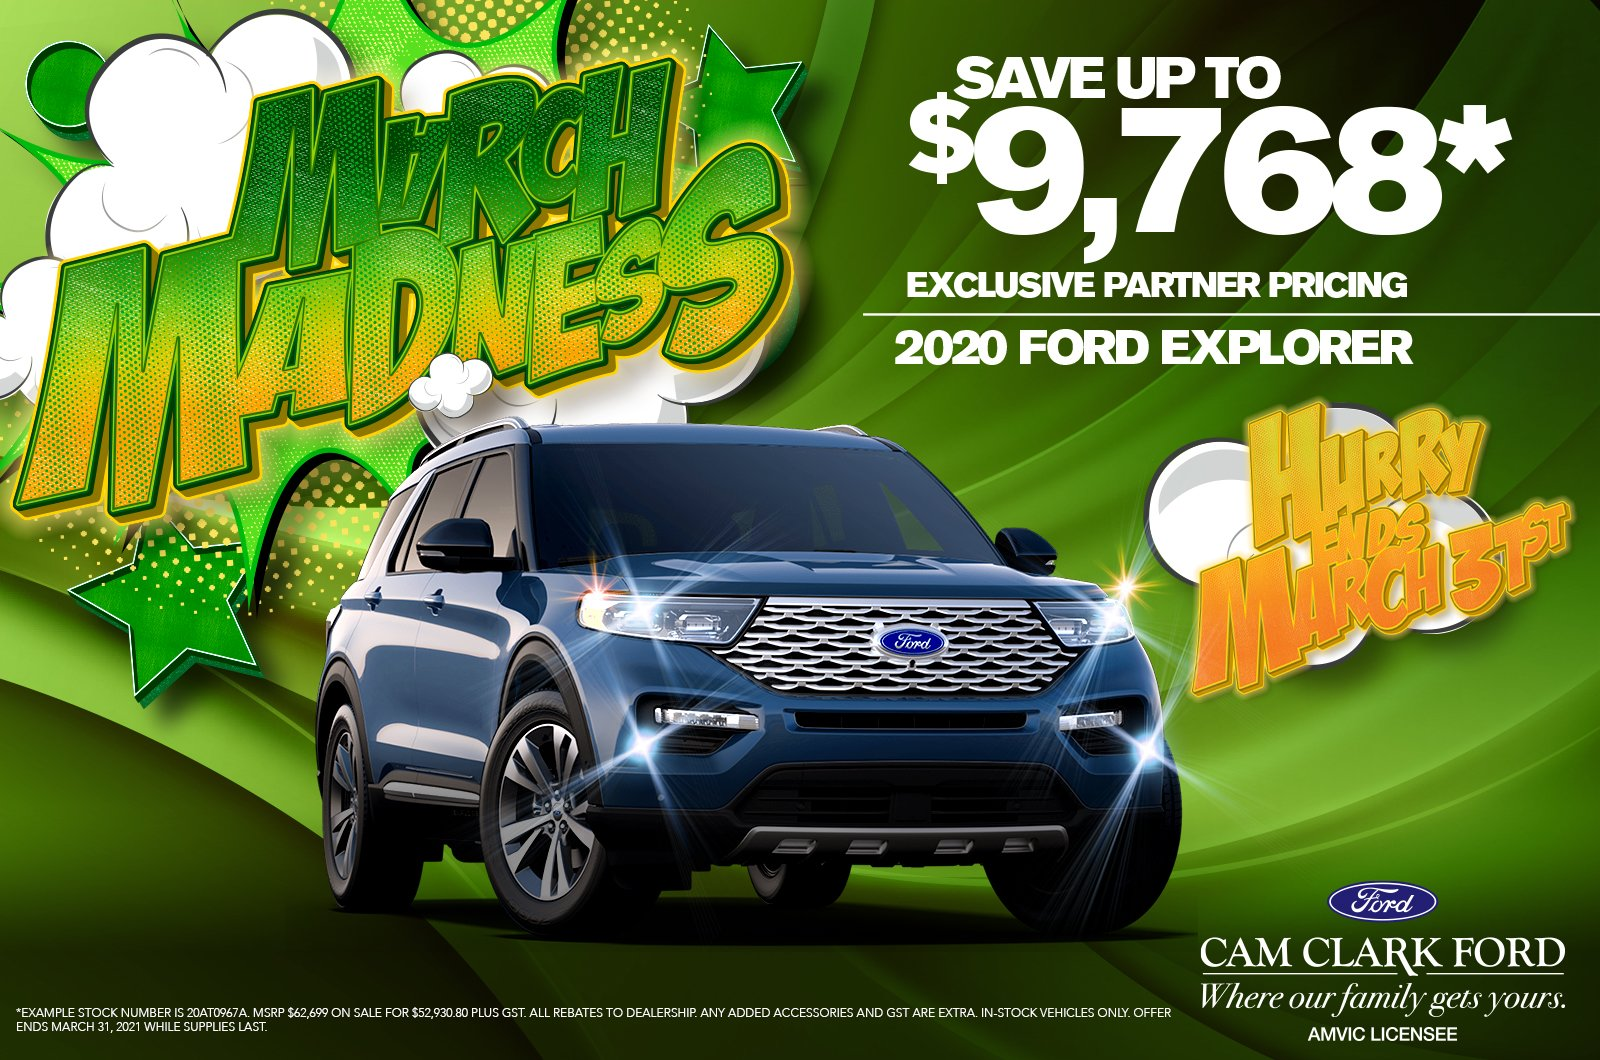 http://Save%20up%20to%20$9768%20on%202020%20Explorers